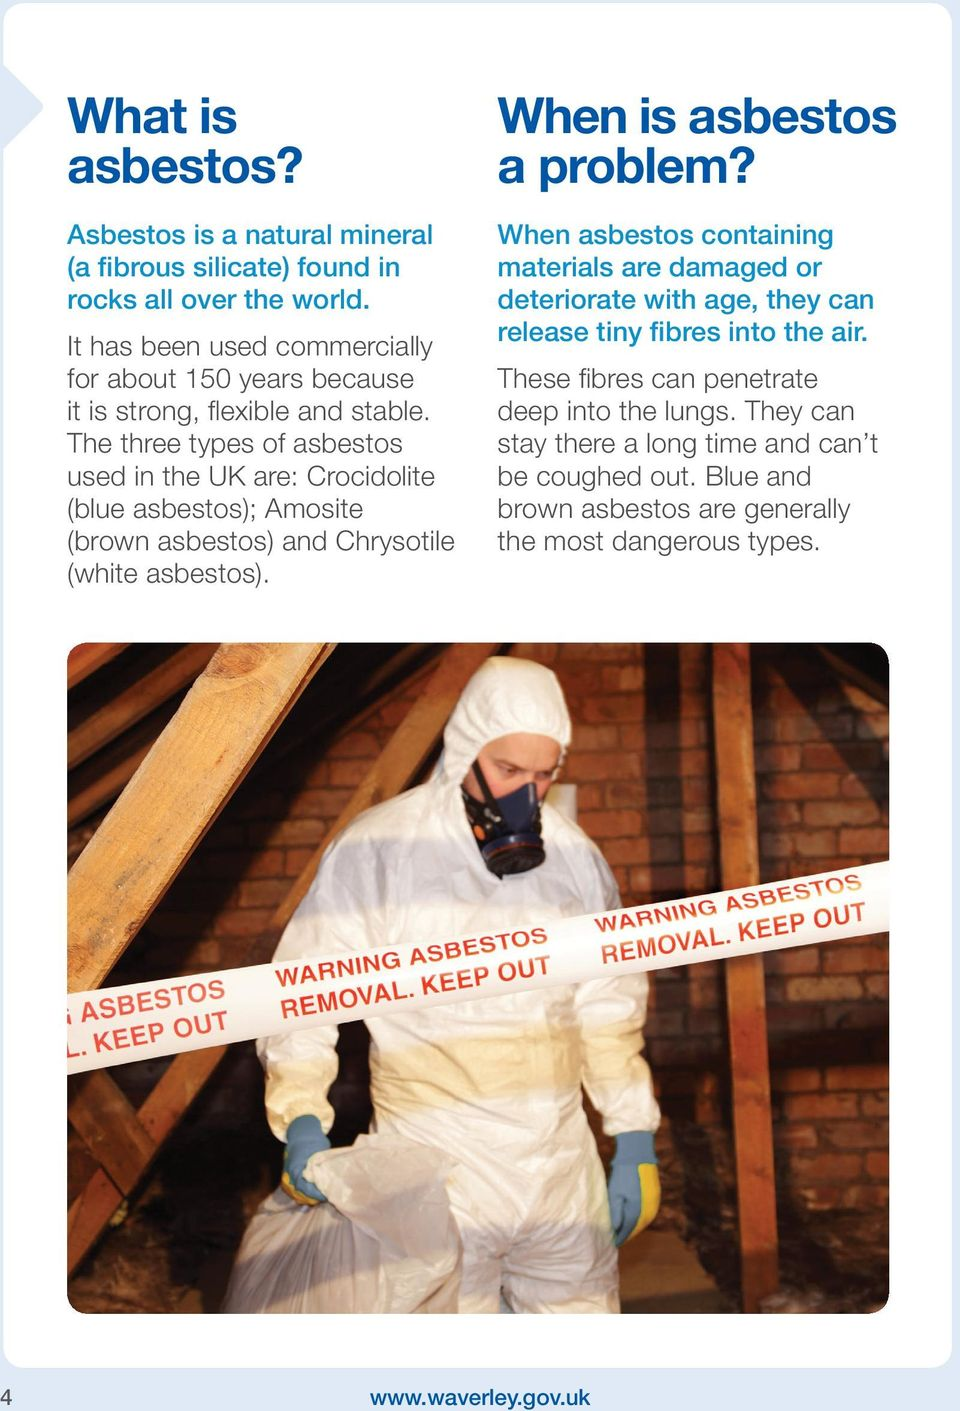 The three types of asbestos used in the UK are: Crocidolite (blue asbestos); Amosite (brown asbestos) and Chrysotile (white asbestos). When is asbestos a problem?